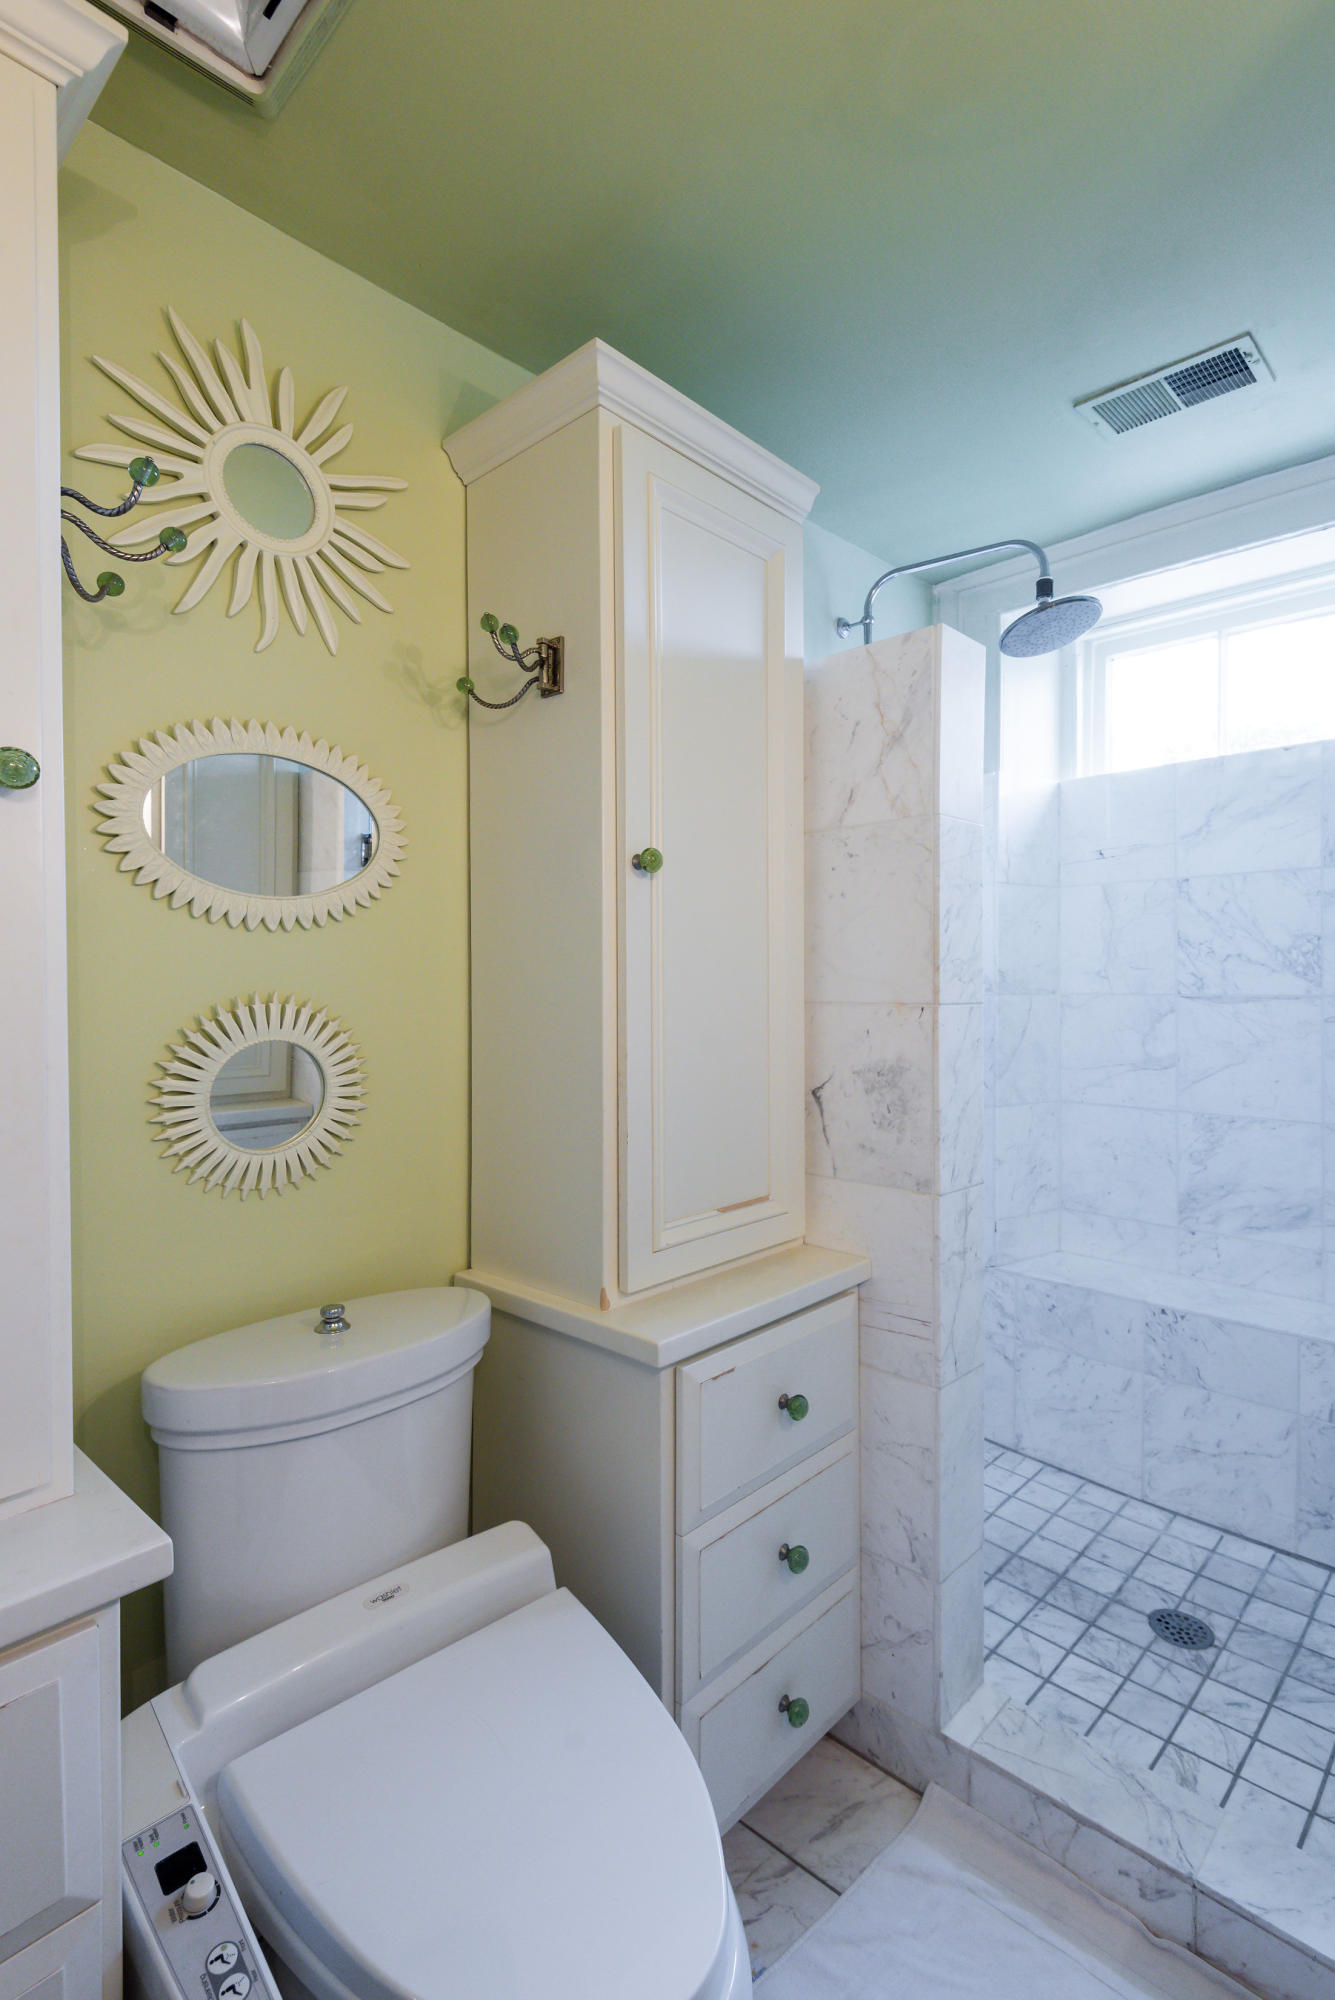 South of Broad Homes For Sale - 22 Church, Charleston, SC - 82